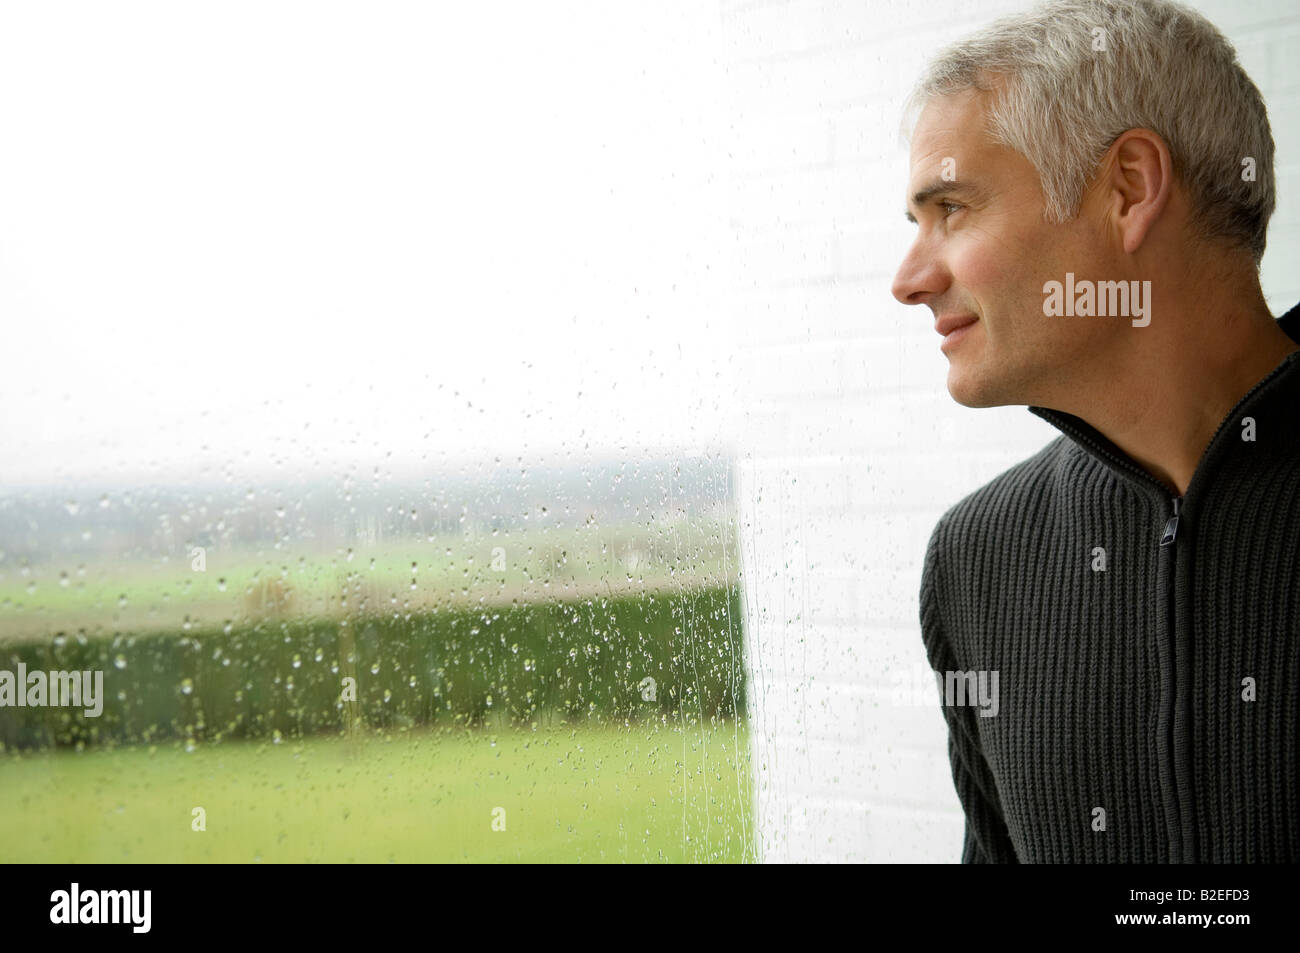 Close-up of a mature man looking out through a window - Stock Image